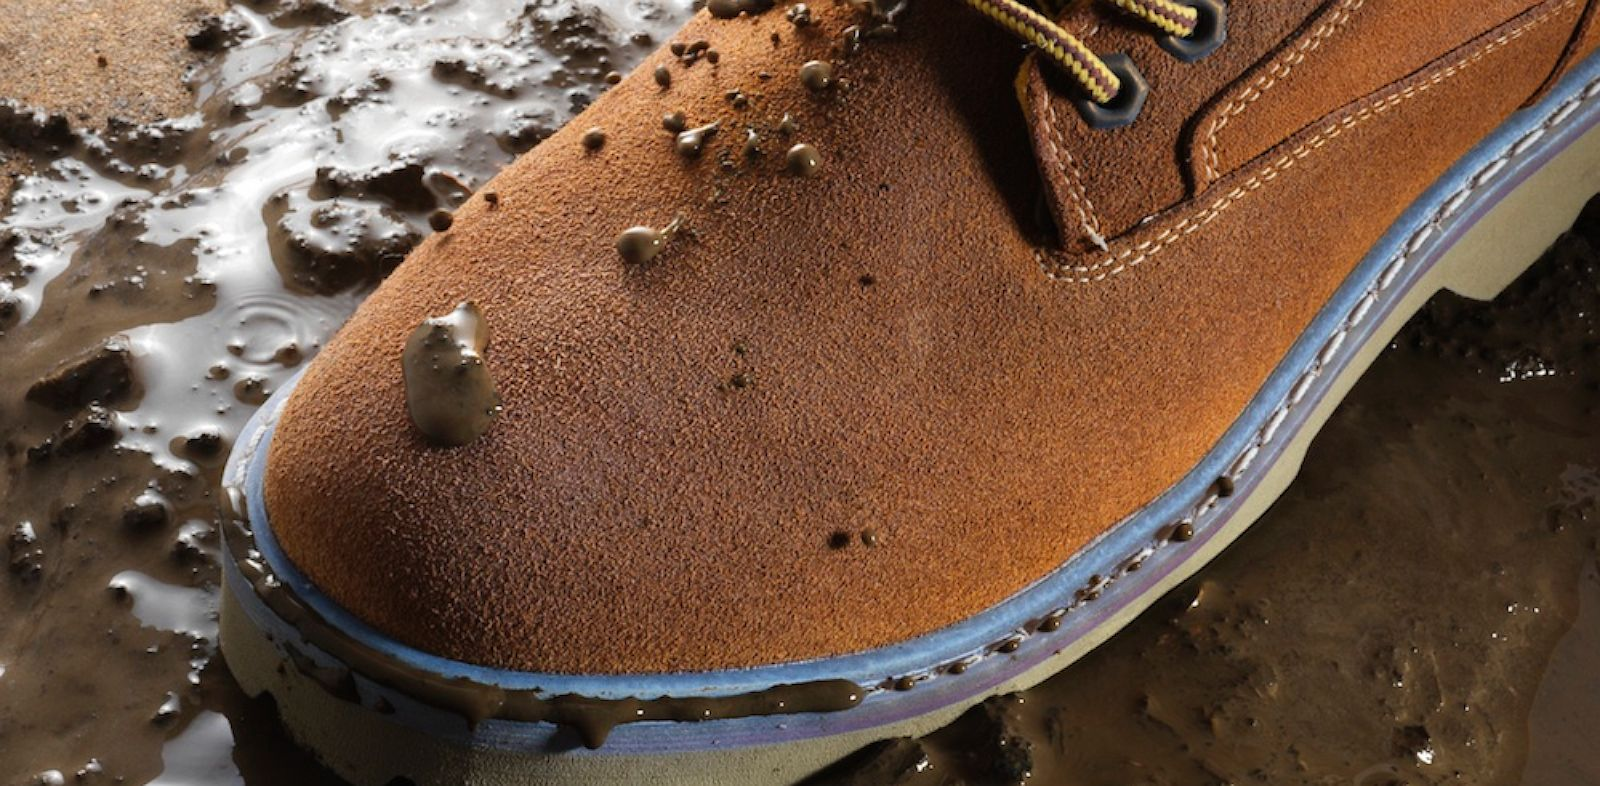 Leather Waterproofing Spray Shoes